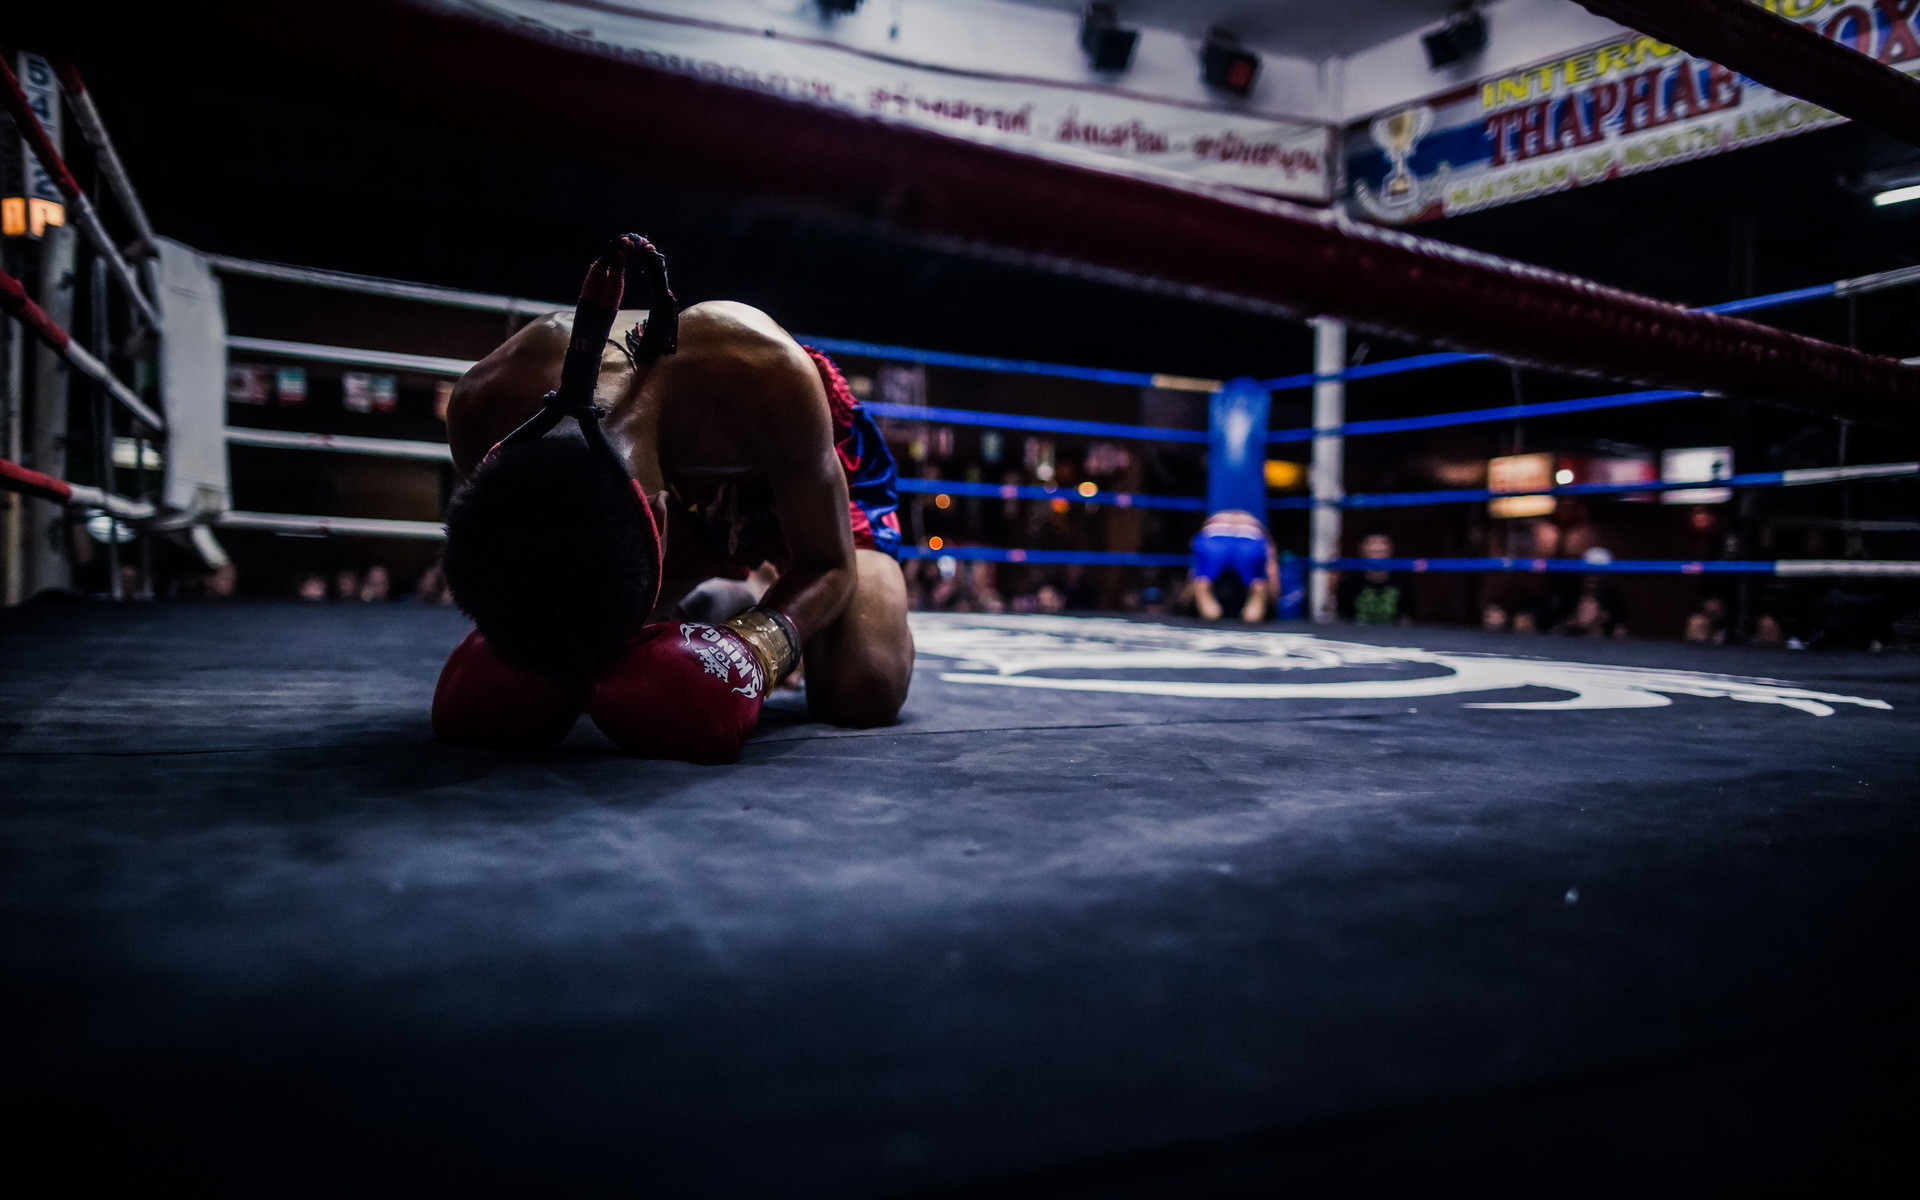 Kickboxing Wallpaper the best 70 images in 2018 1920x1200